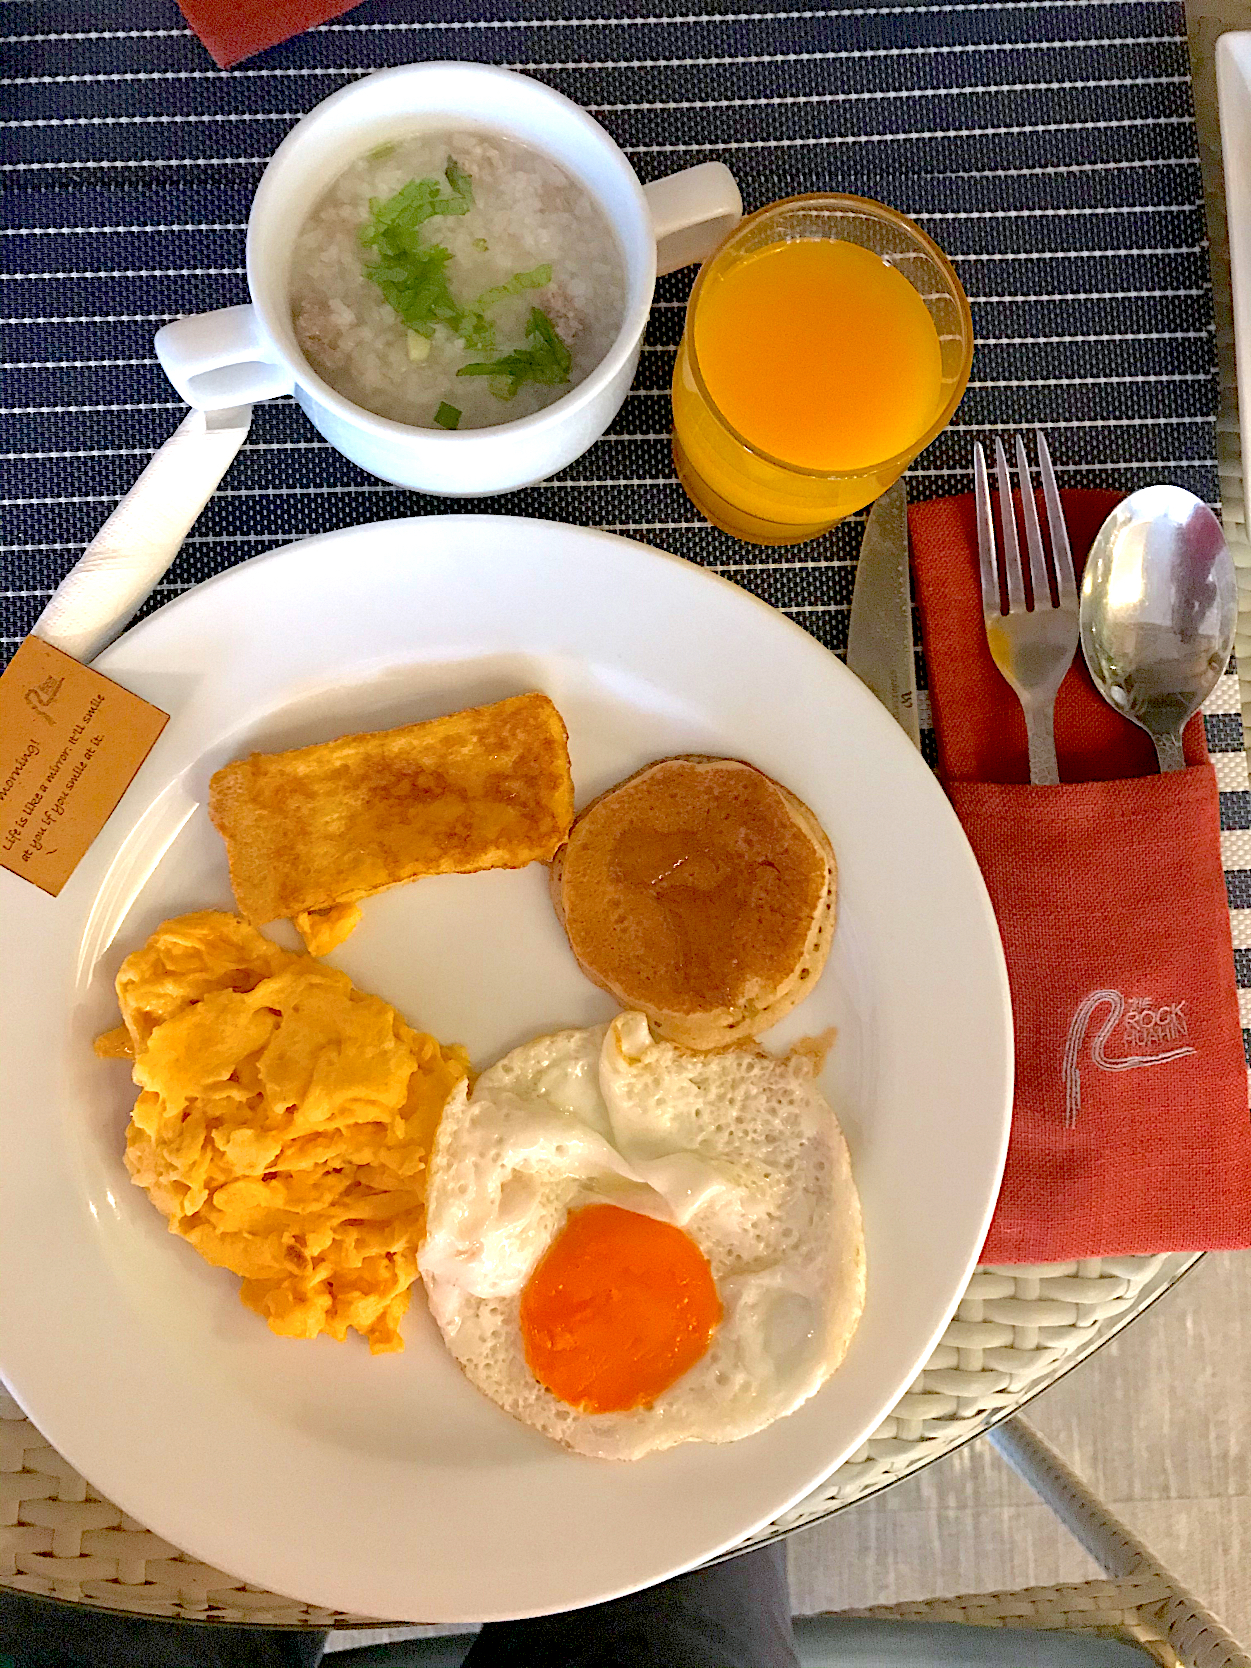 Eggs and French toast, pork congee and orange juice